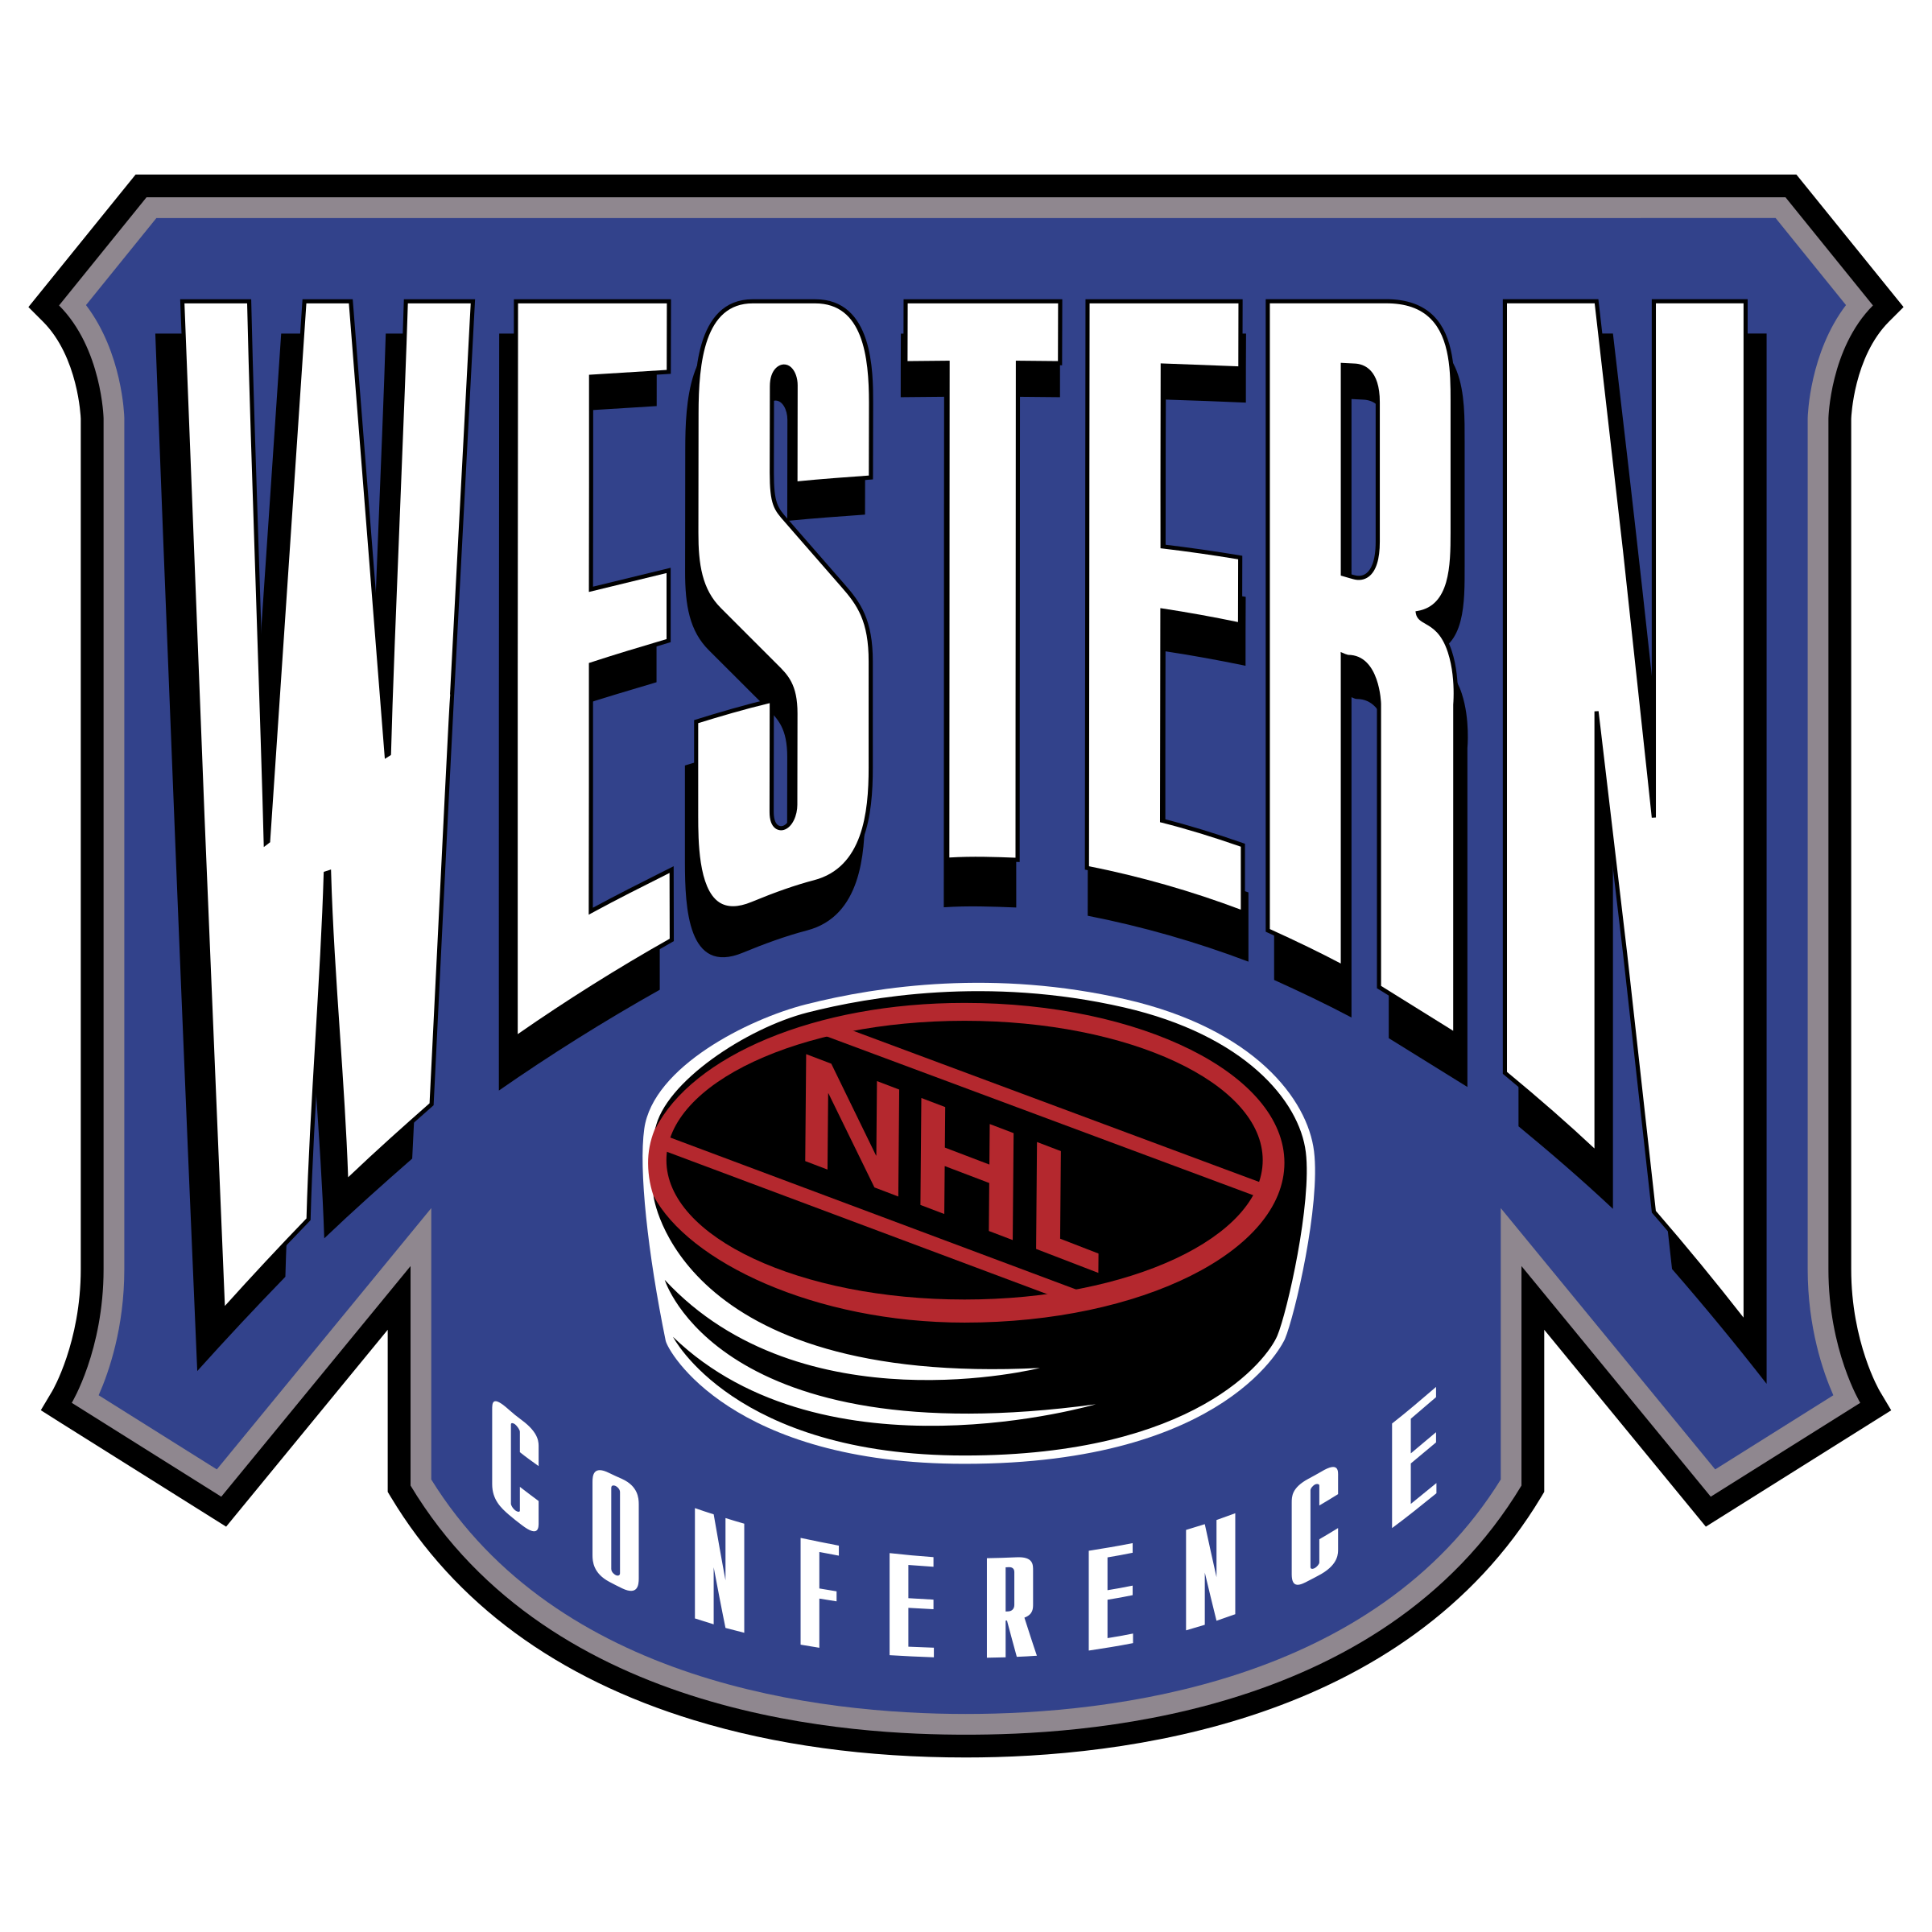 nhl-western-conference-logo-png-transparent.png